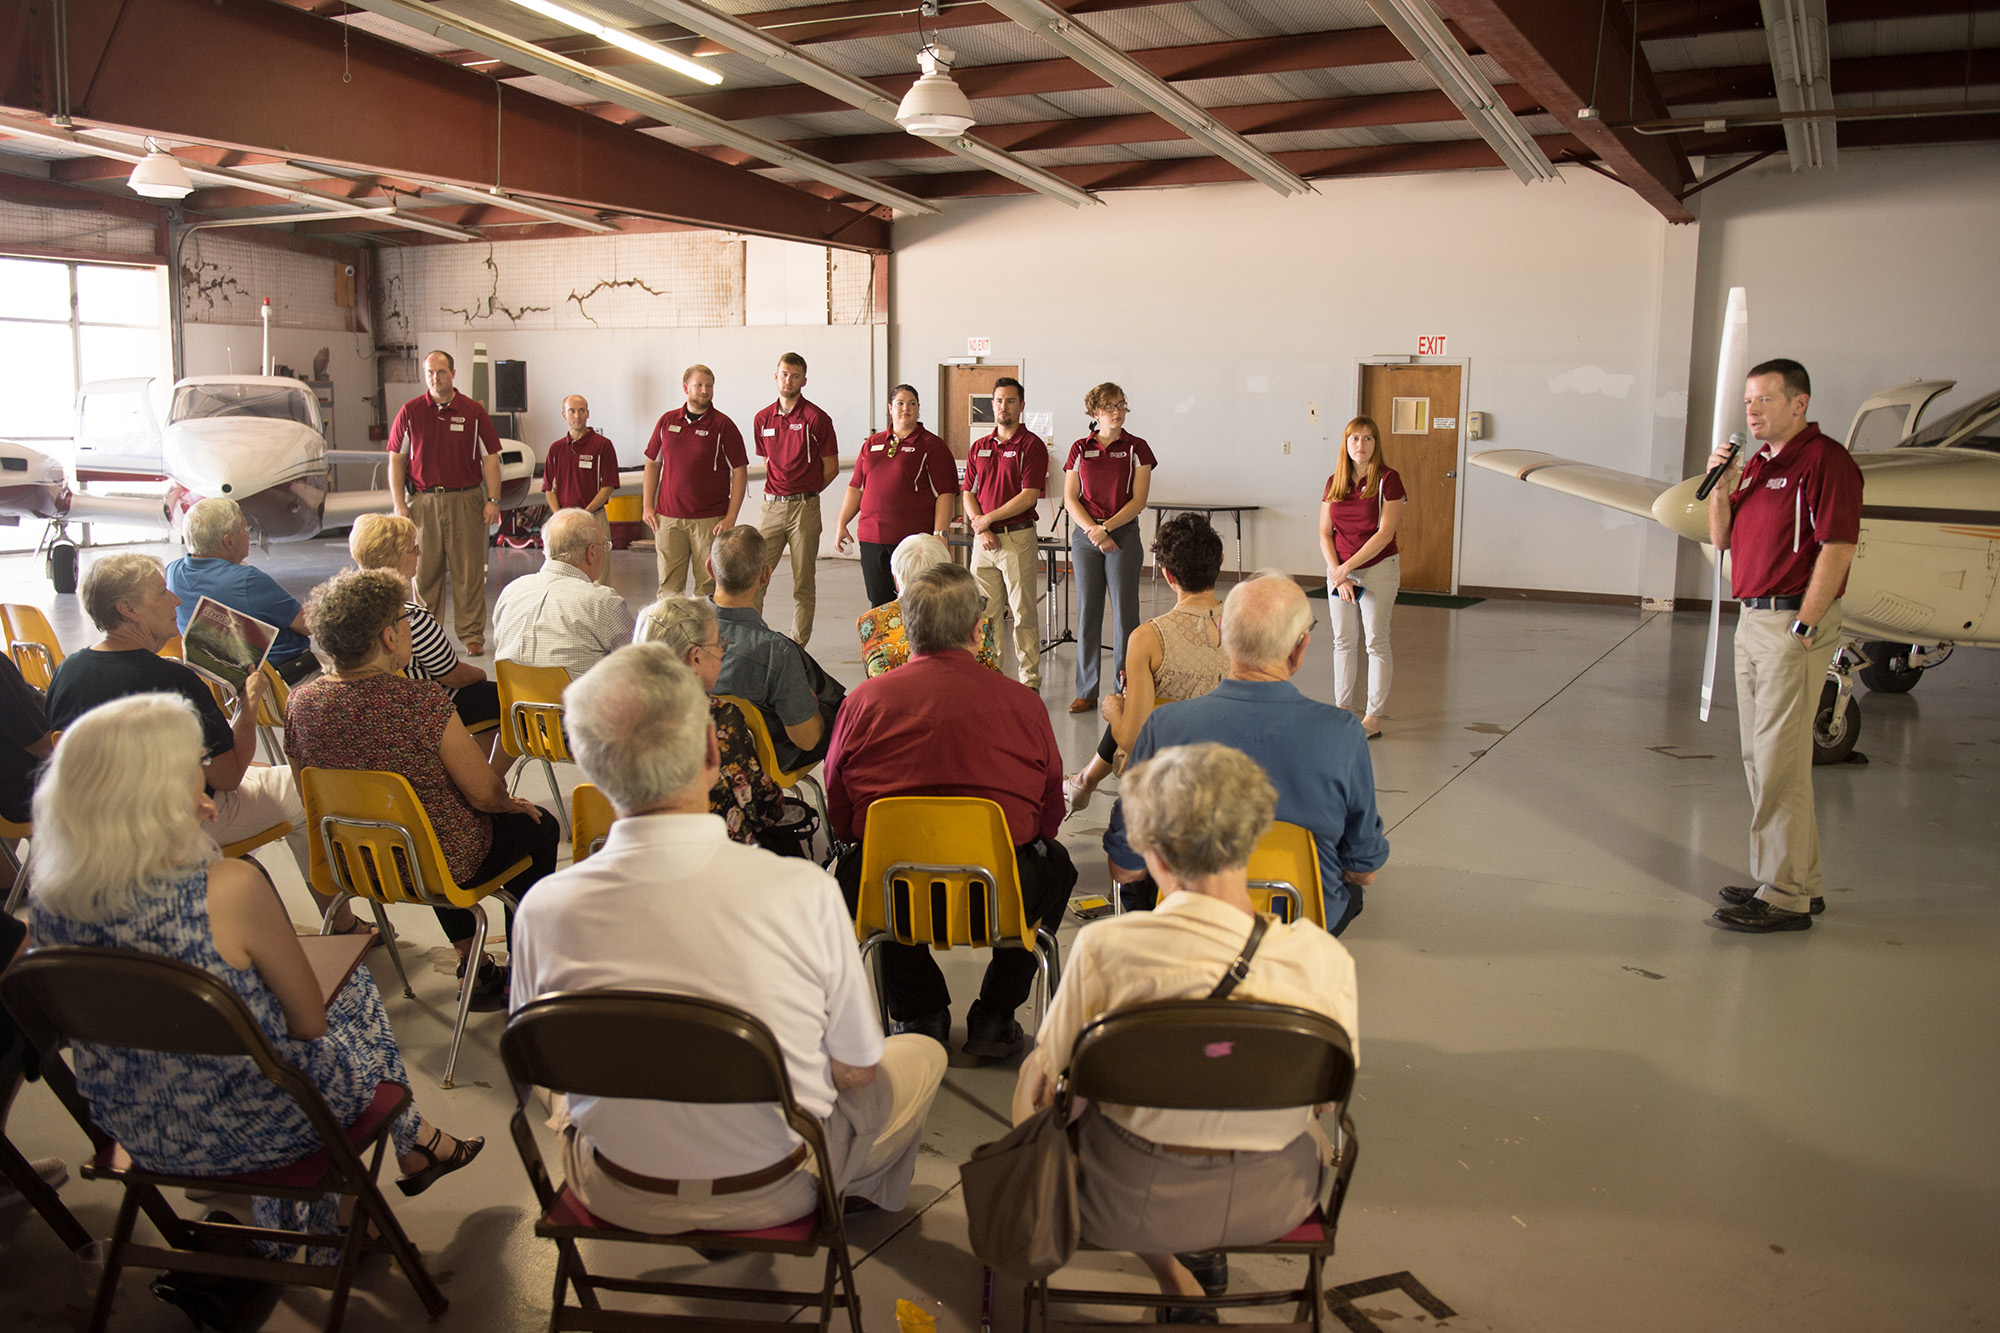 Aviation director Mike Baker introduces the aviation faculty and staff at an open house Friday afternoon.